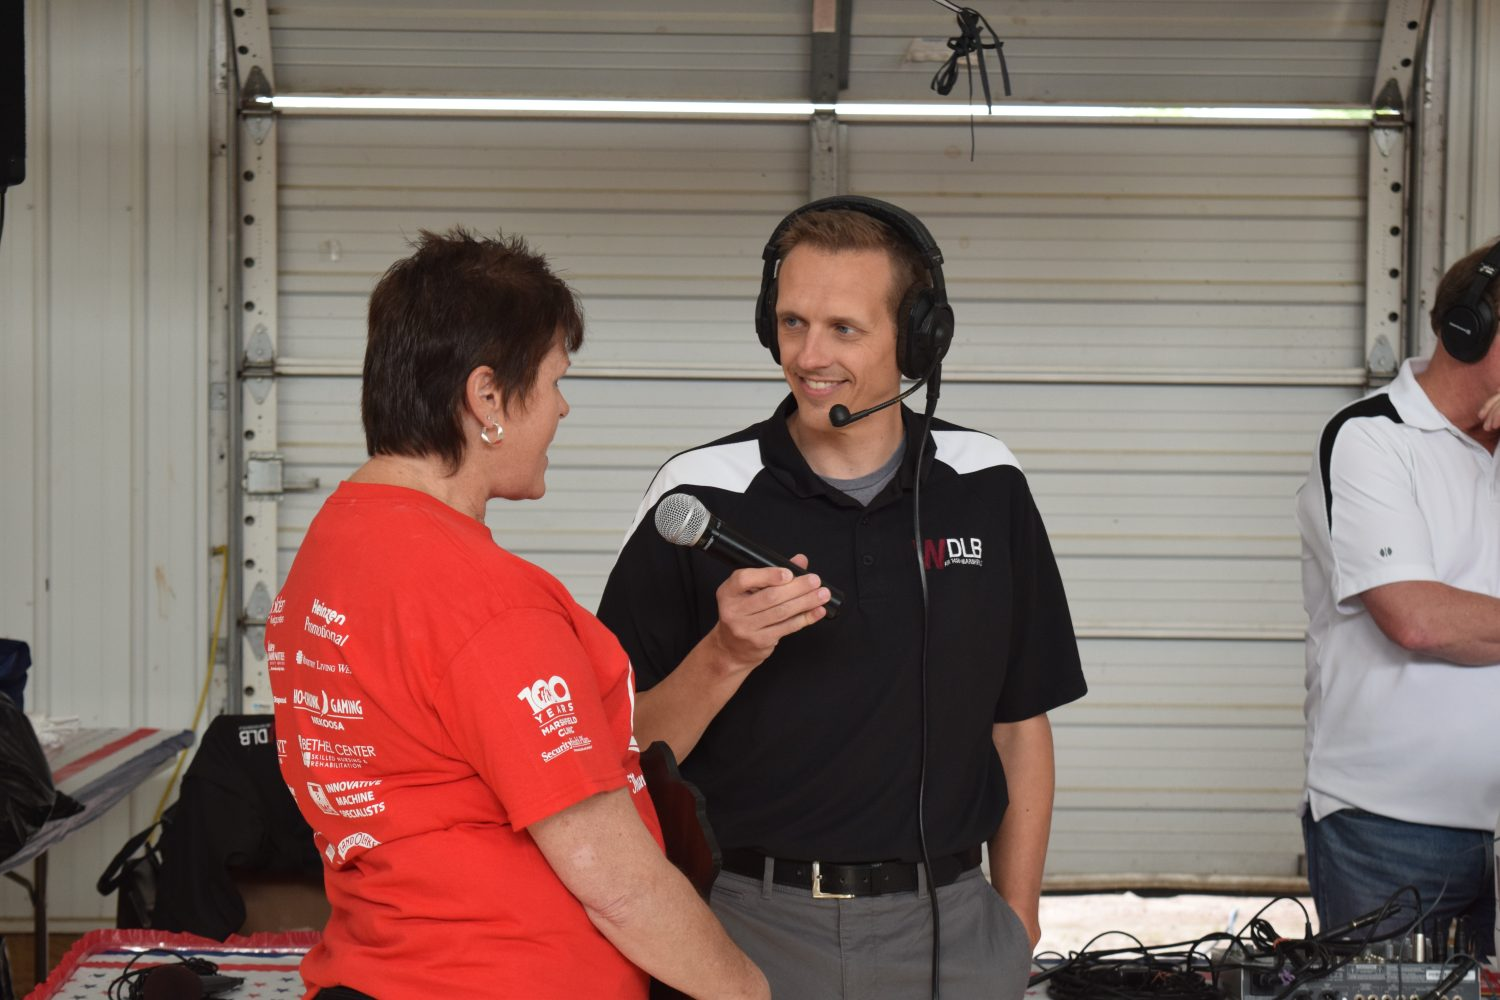 WDLB's Mike Warren conducts an interview during the festivities.